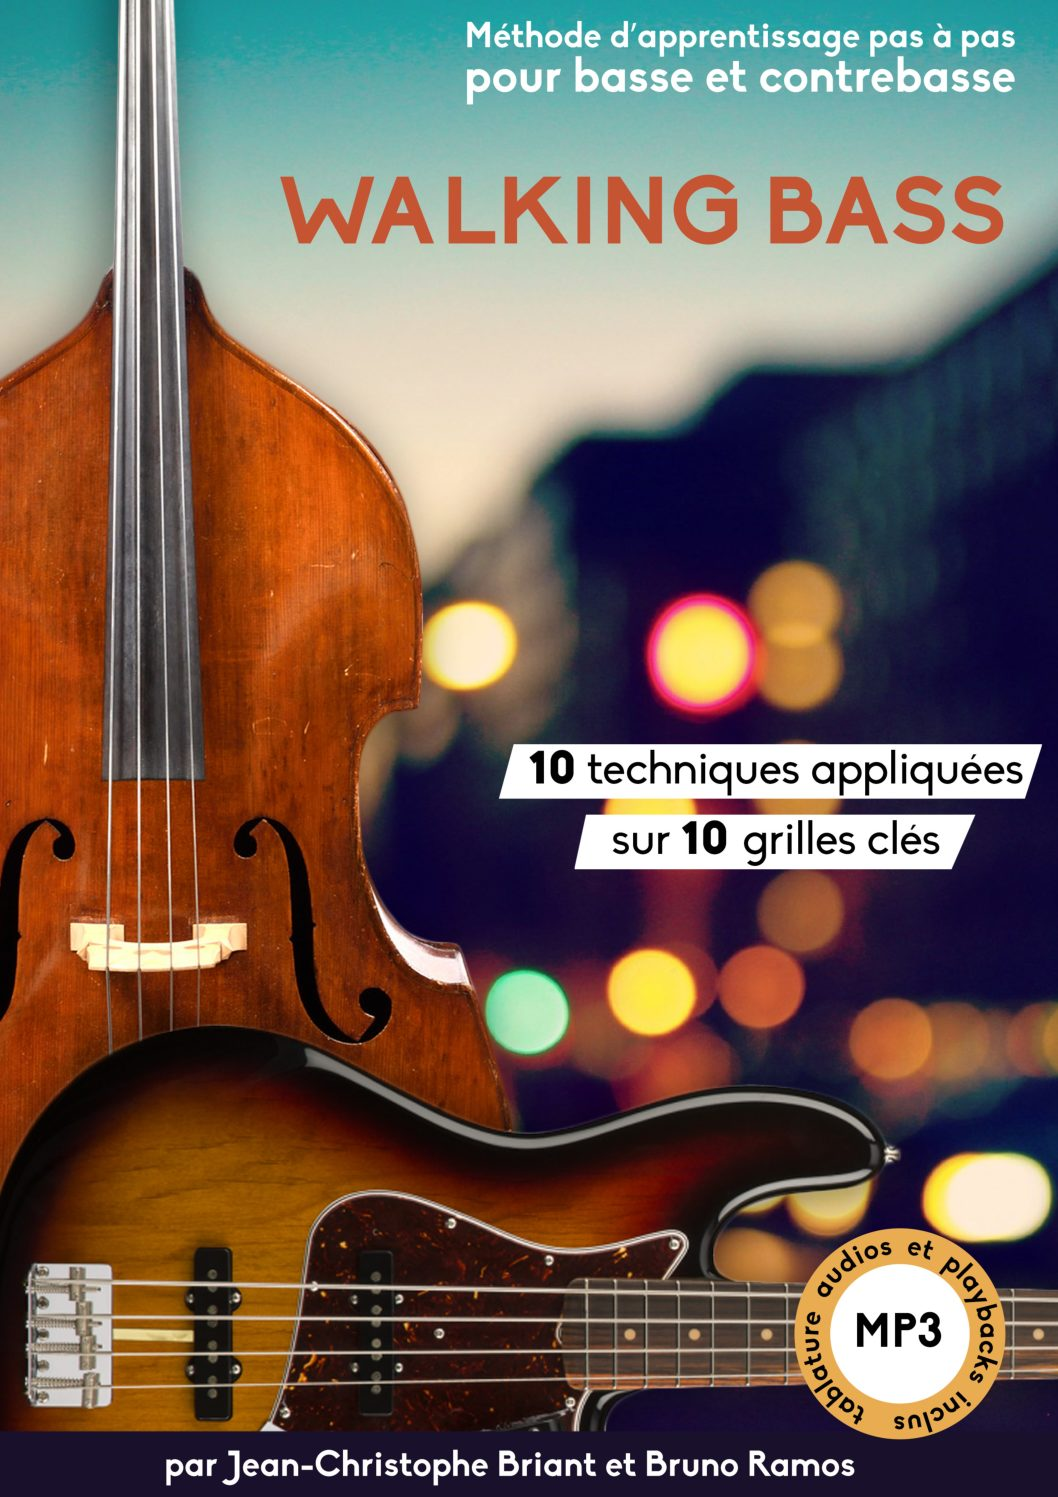 Walking bass pour bassistes et contrebassistes